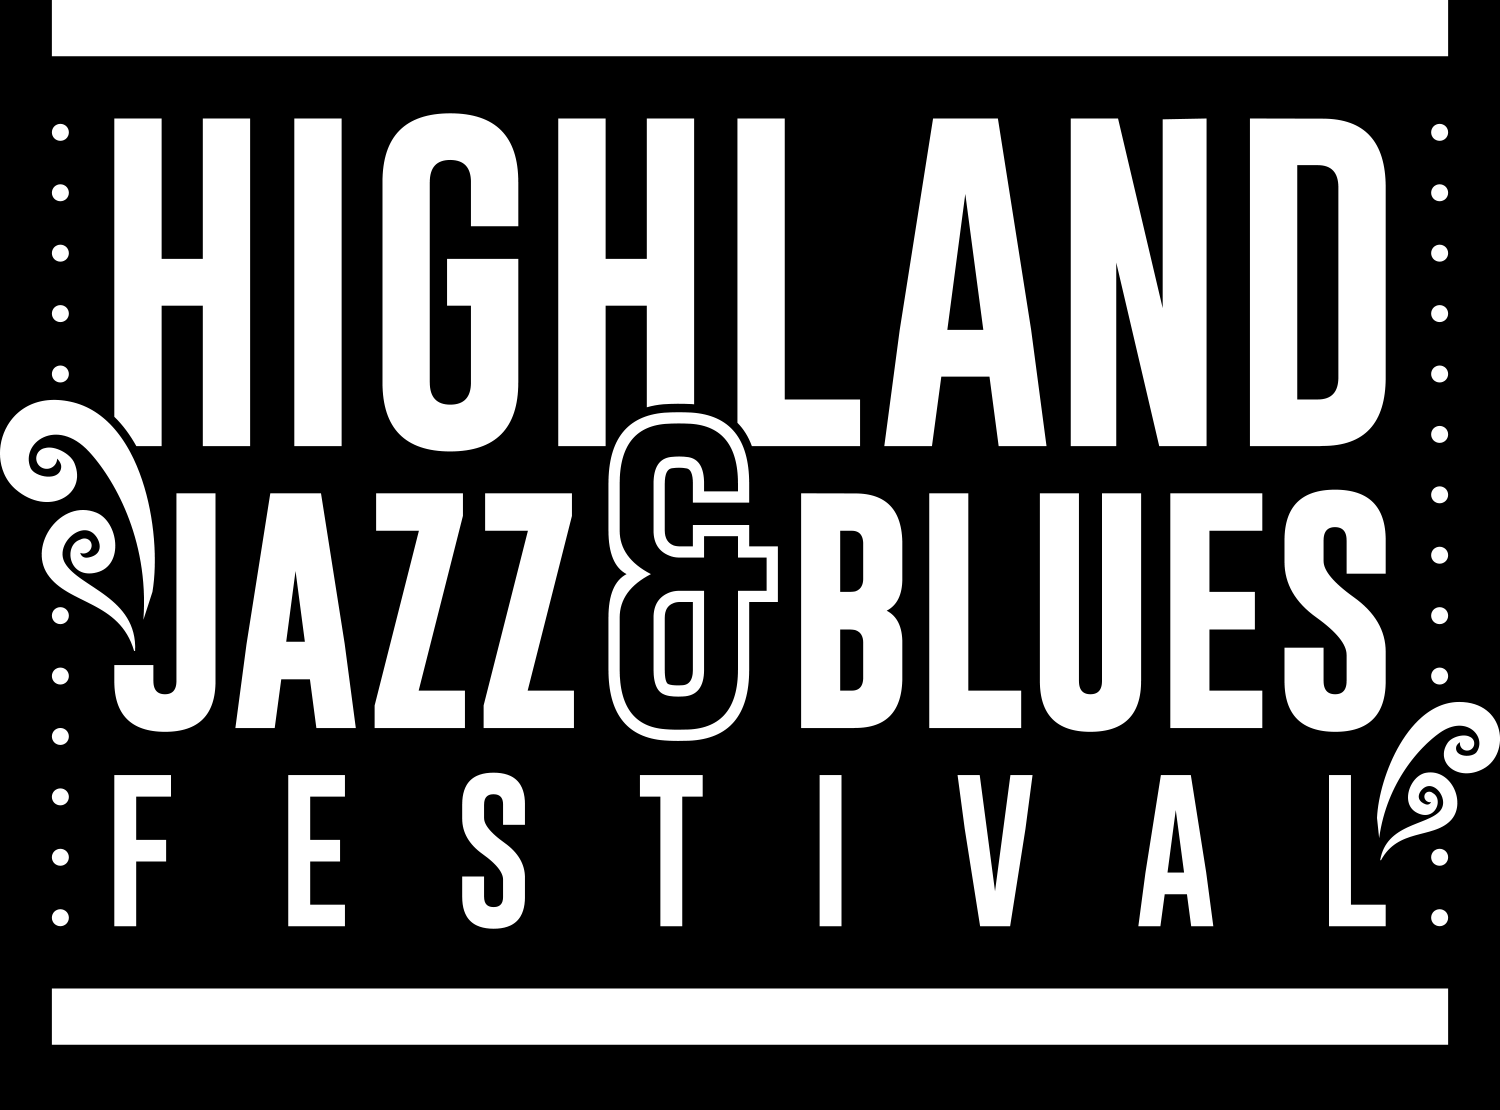 Highland Jazz & Blues Festival Presented by Twisted Root | Shreveport, LA